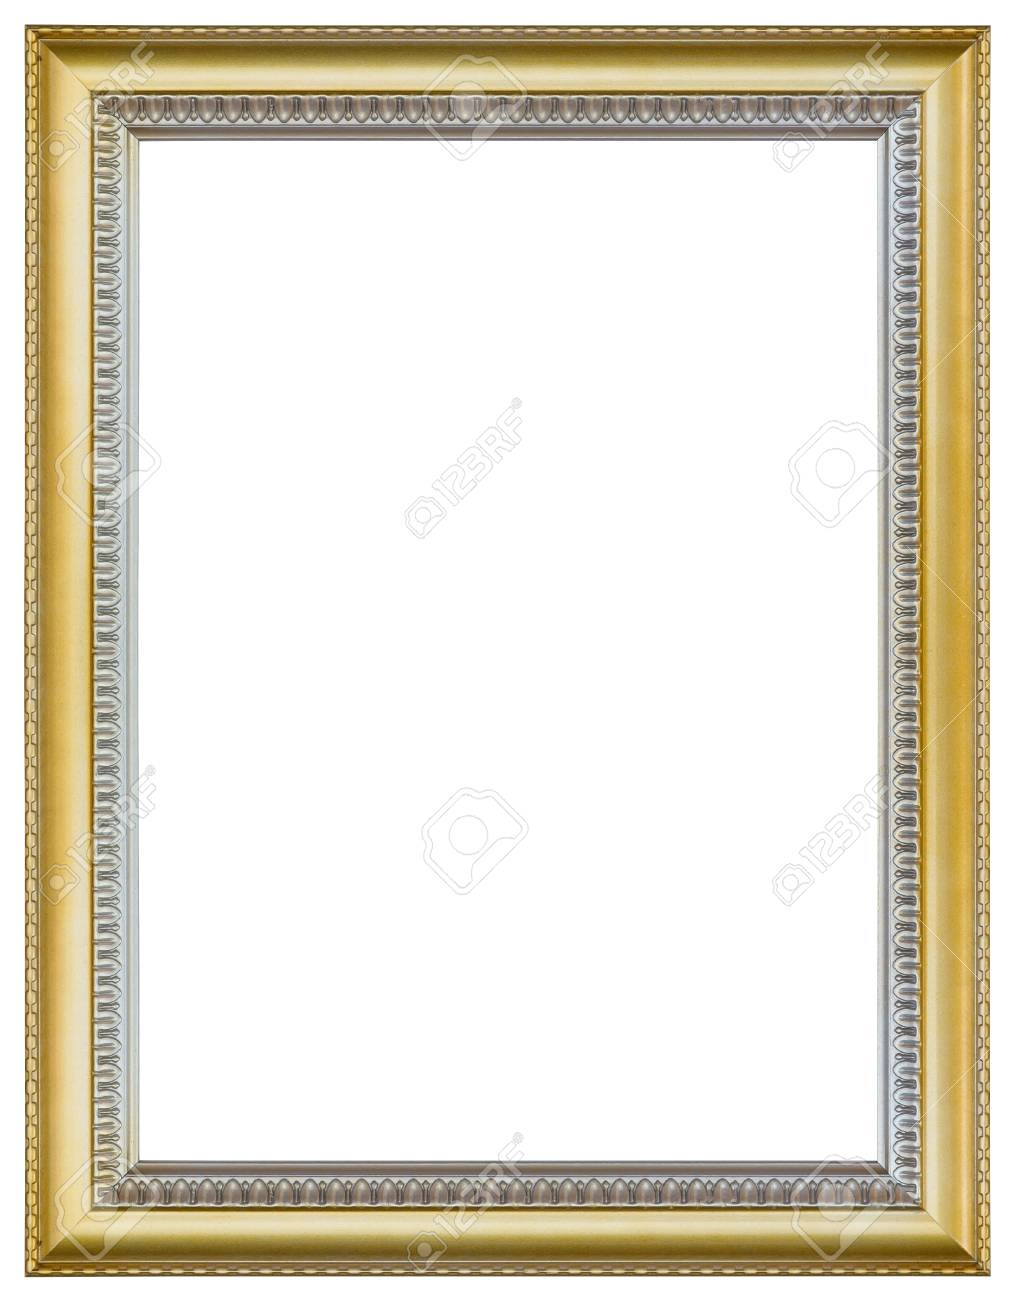 Gold Picture Frame For Painting Or Picture On White Background ...